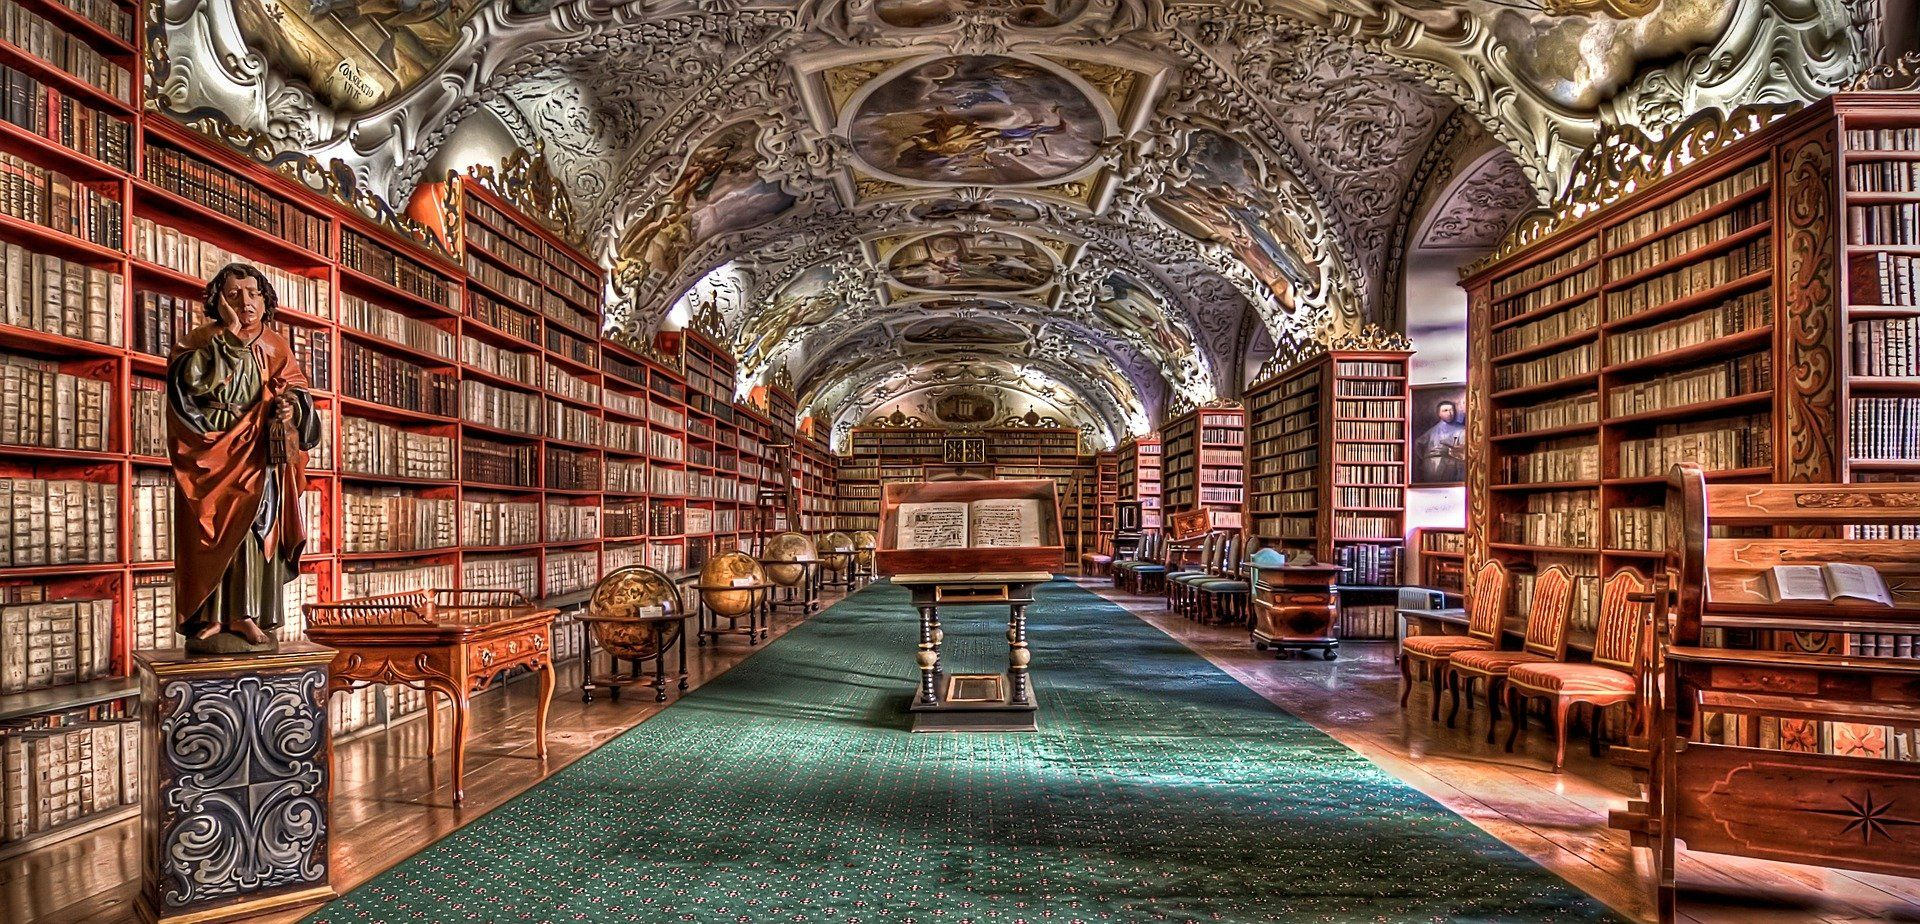 Decorative European library full of books and manuscripts